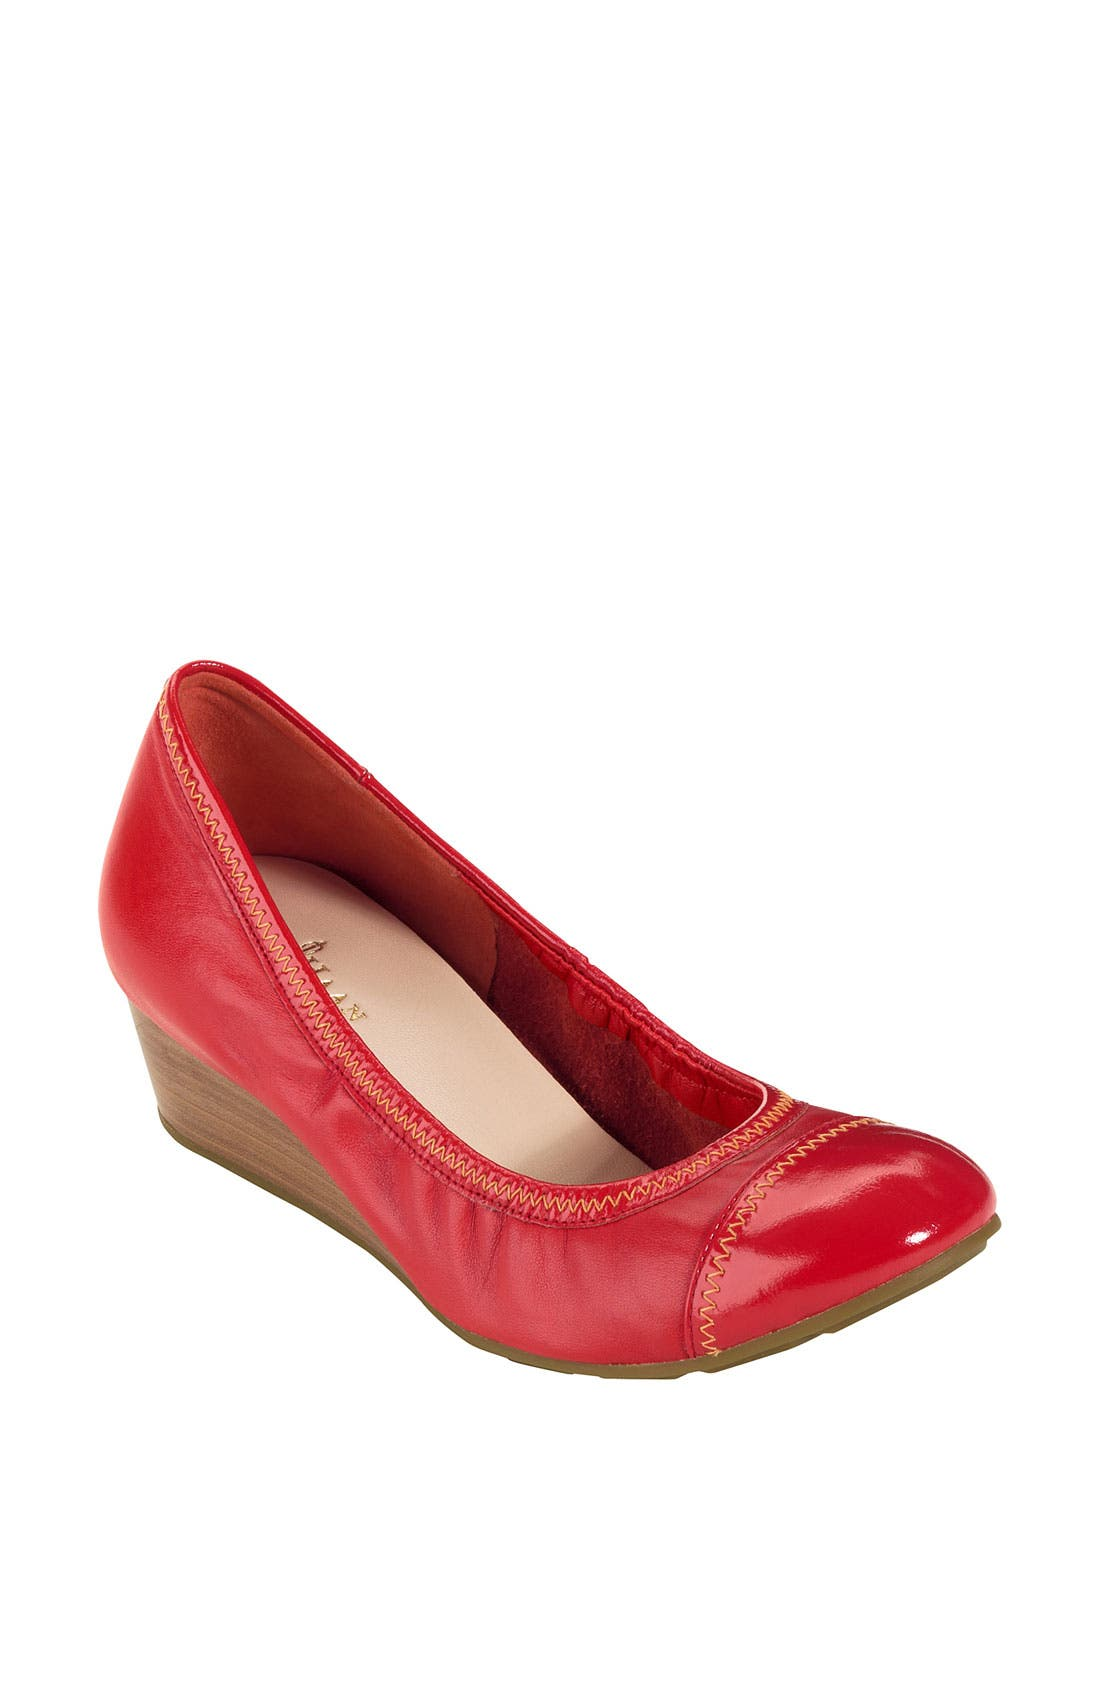 Main Image - Cole Haan 'Air - Milly' Wedge Pump